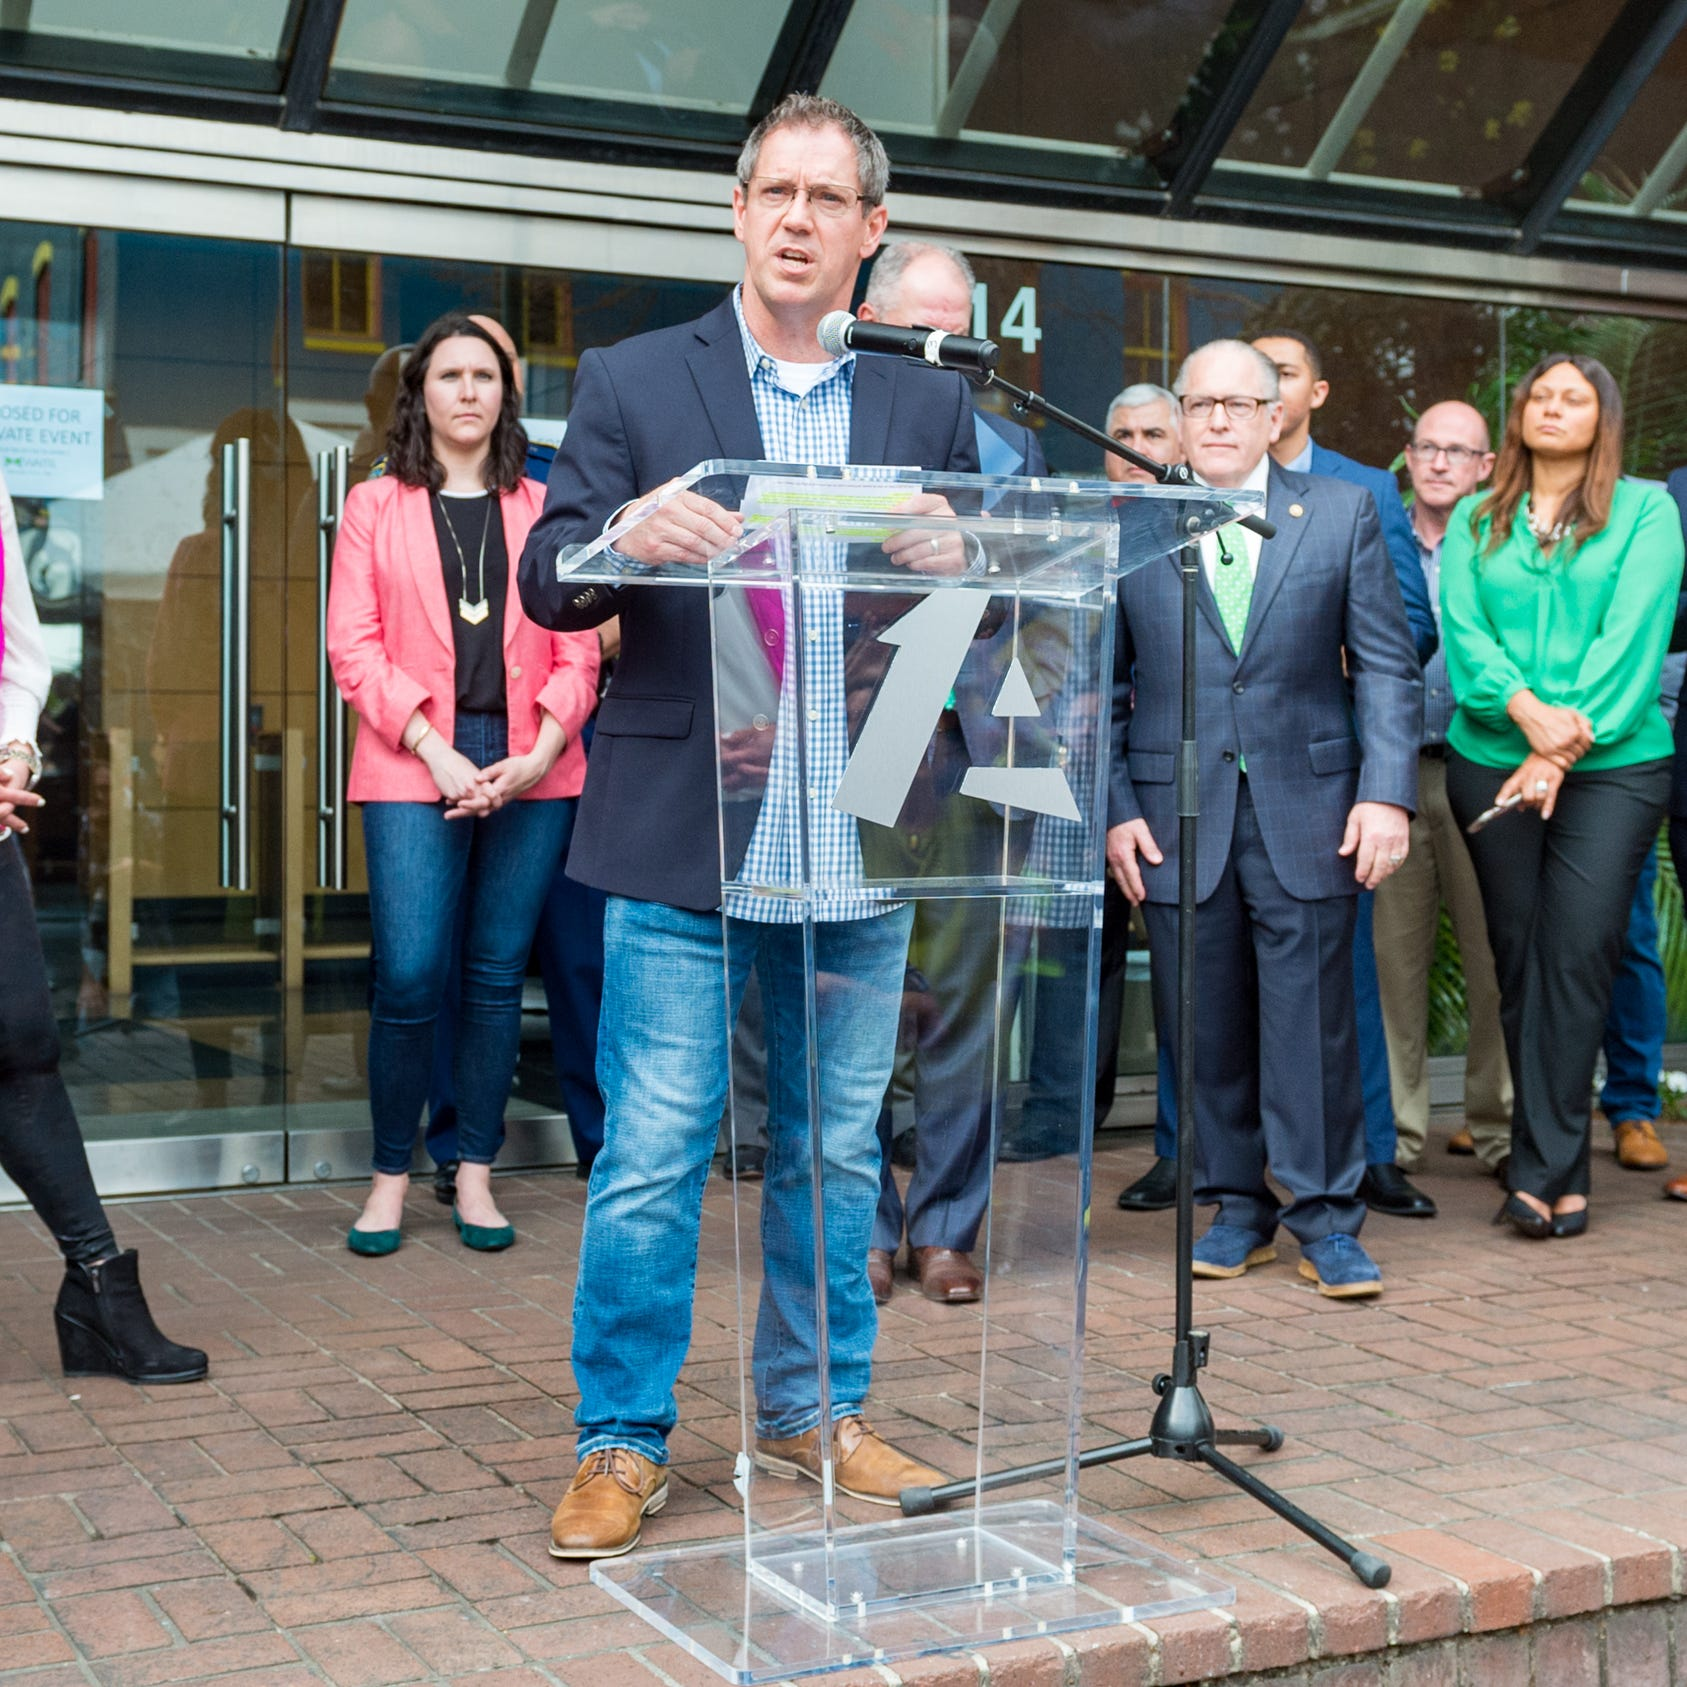 Waitr delivers 200 new jobs to Lafayette